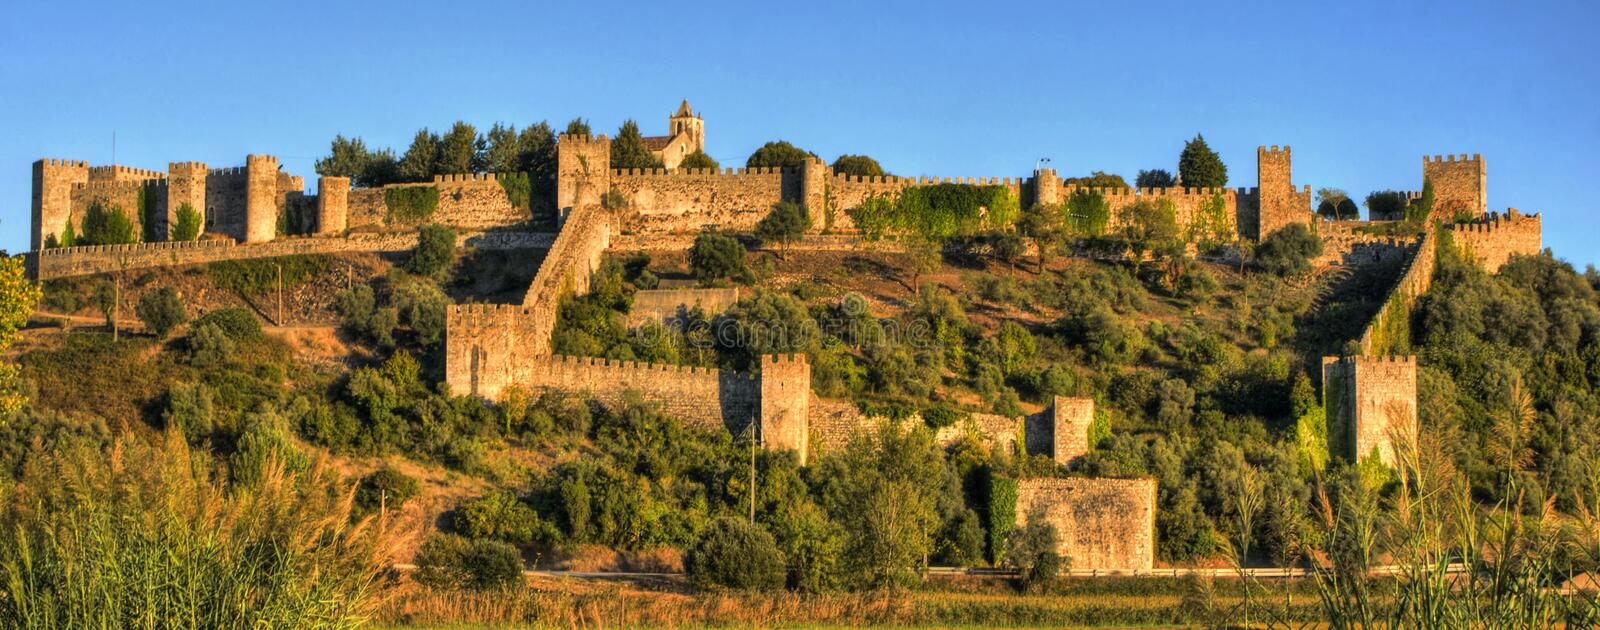 Download Ruined Castle Of Montemor-o-Velho Stock Image - Image of mysterious, obsolete: 92490577